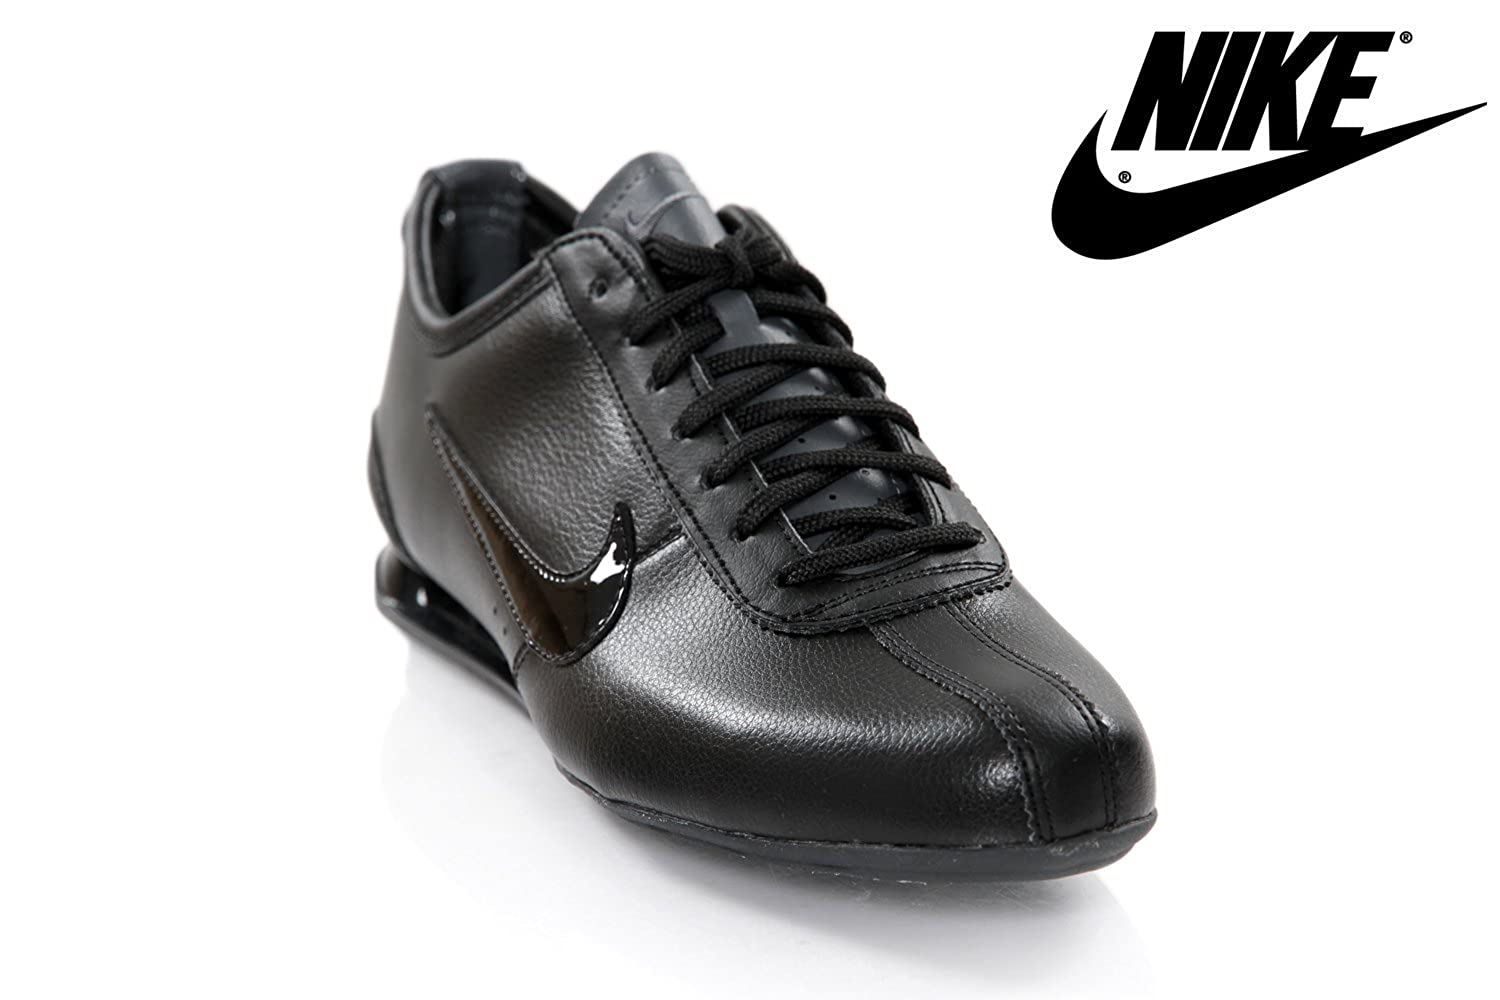 watch b9370 4fc80 ... new style nike shox rivalry 47.5 13 316317 091 47.5 13 noir amazon.fr  chaussures